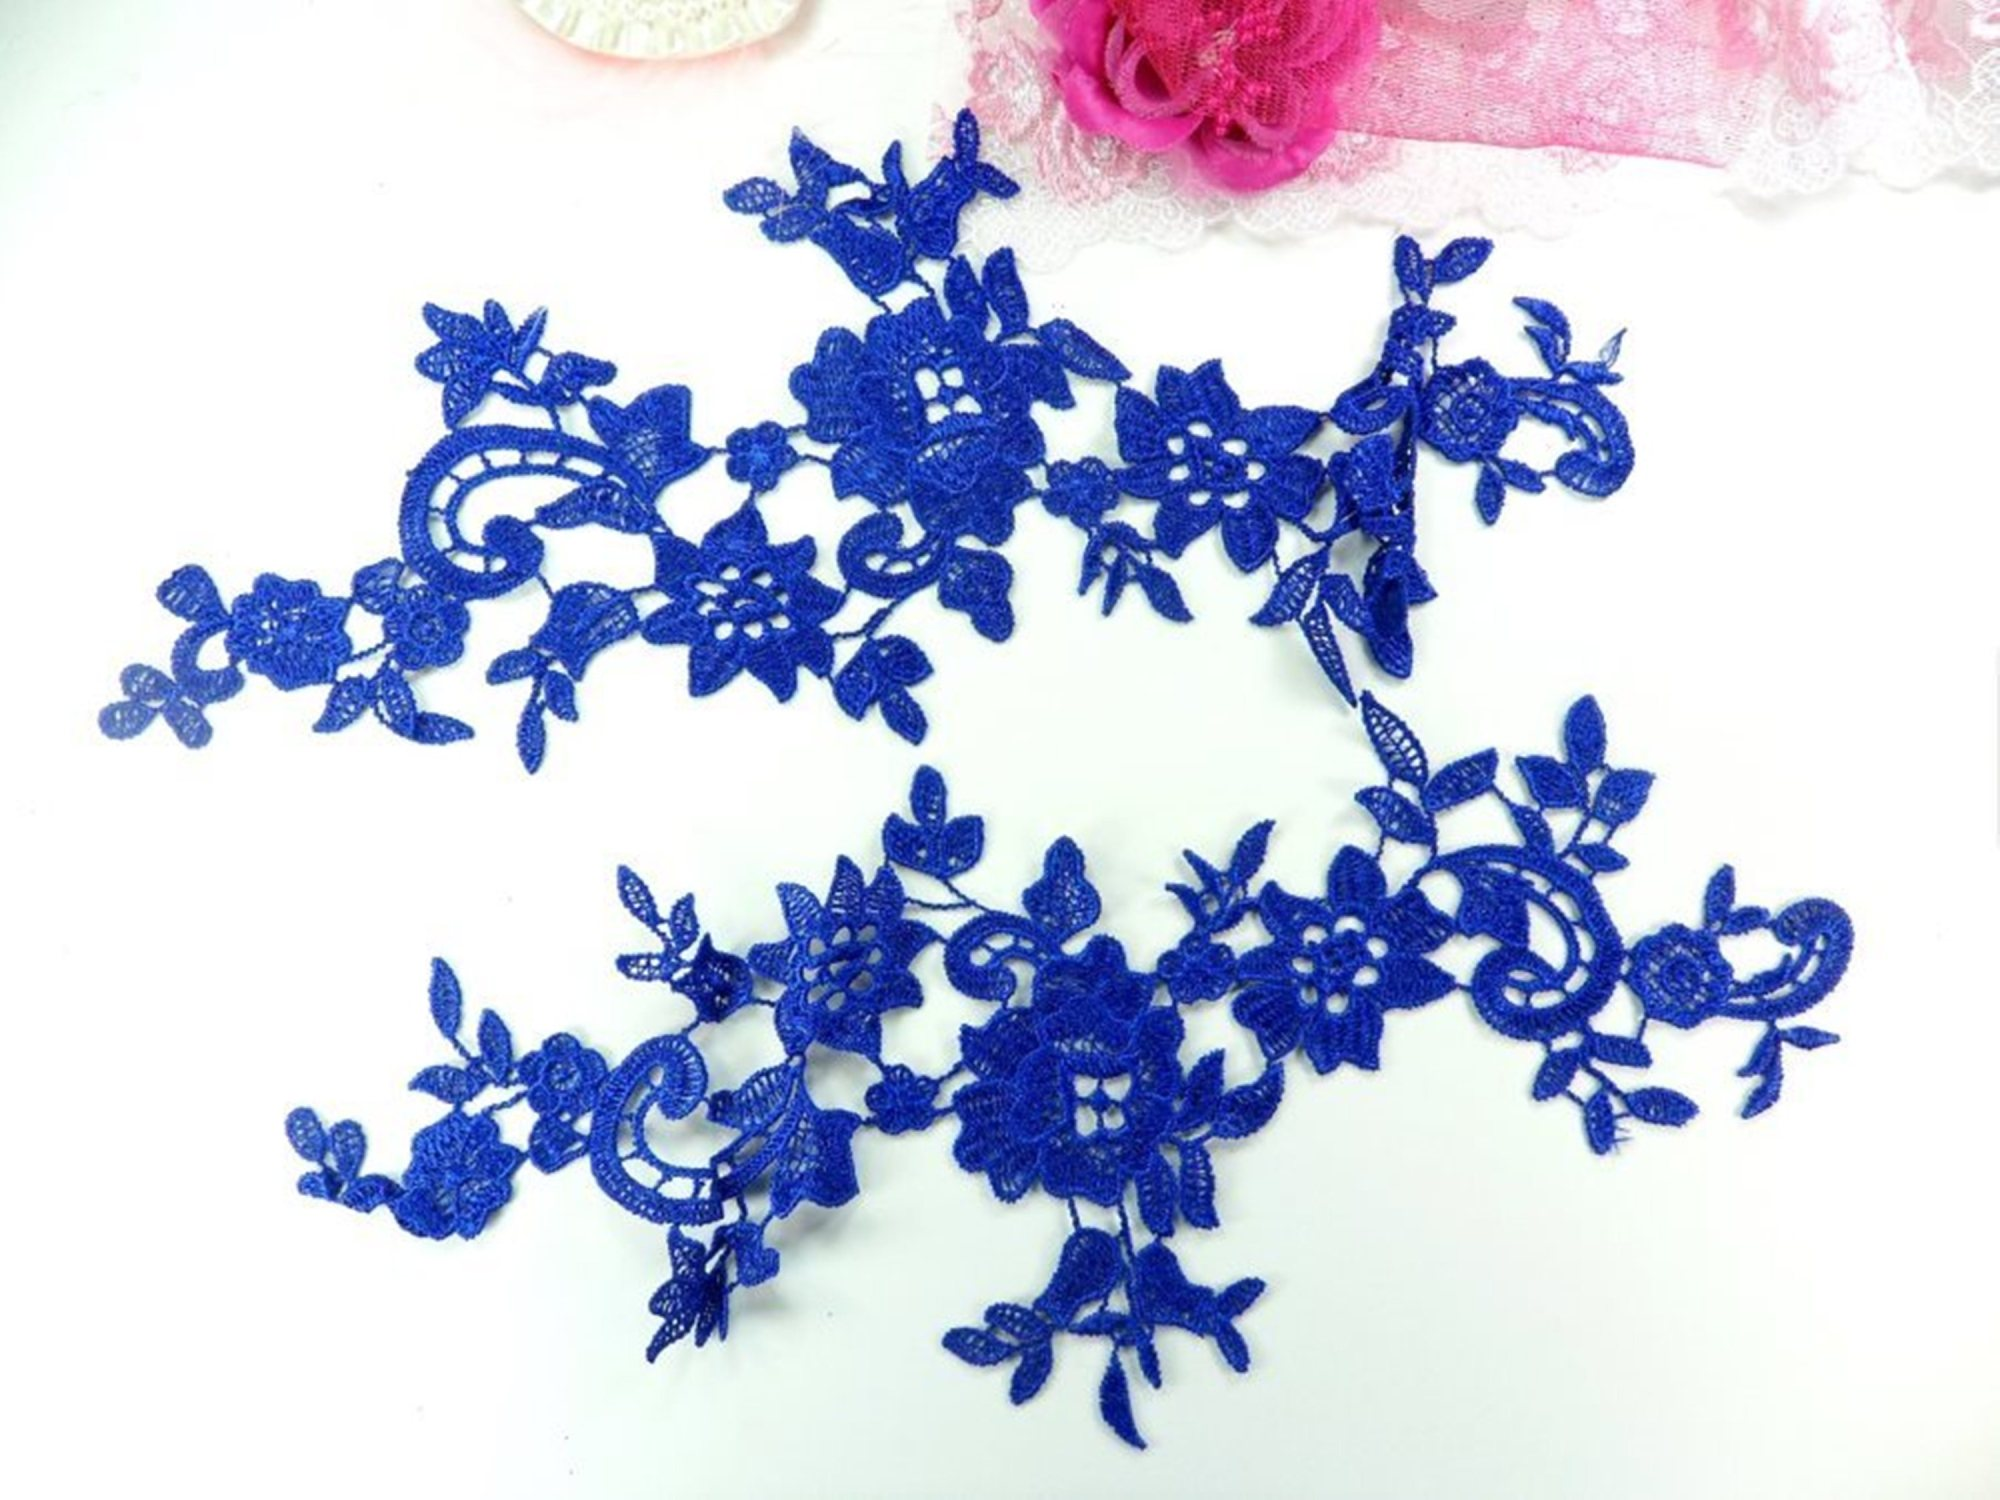 "Embroidered Floral Applique Mirror Pair Blue Clothing Patch Craft Motif 13"" GB878x-bl"